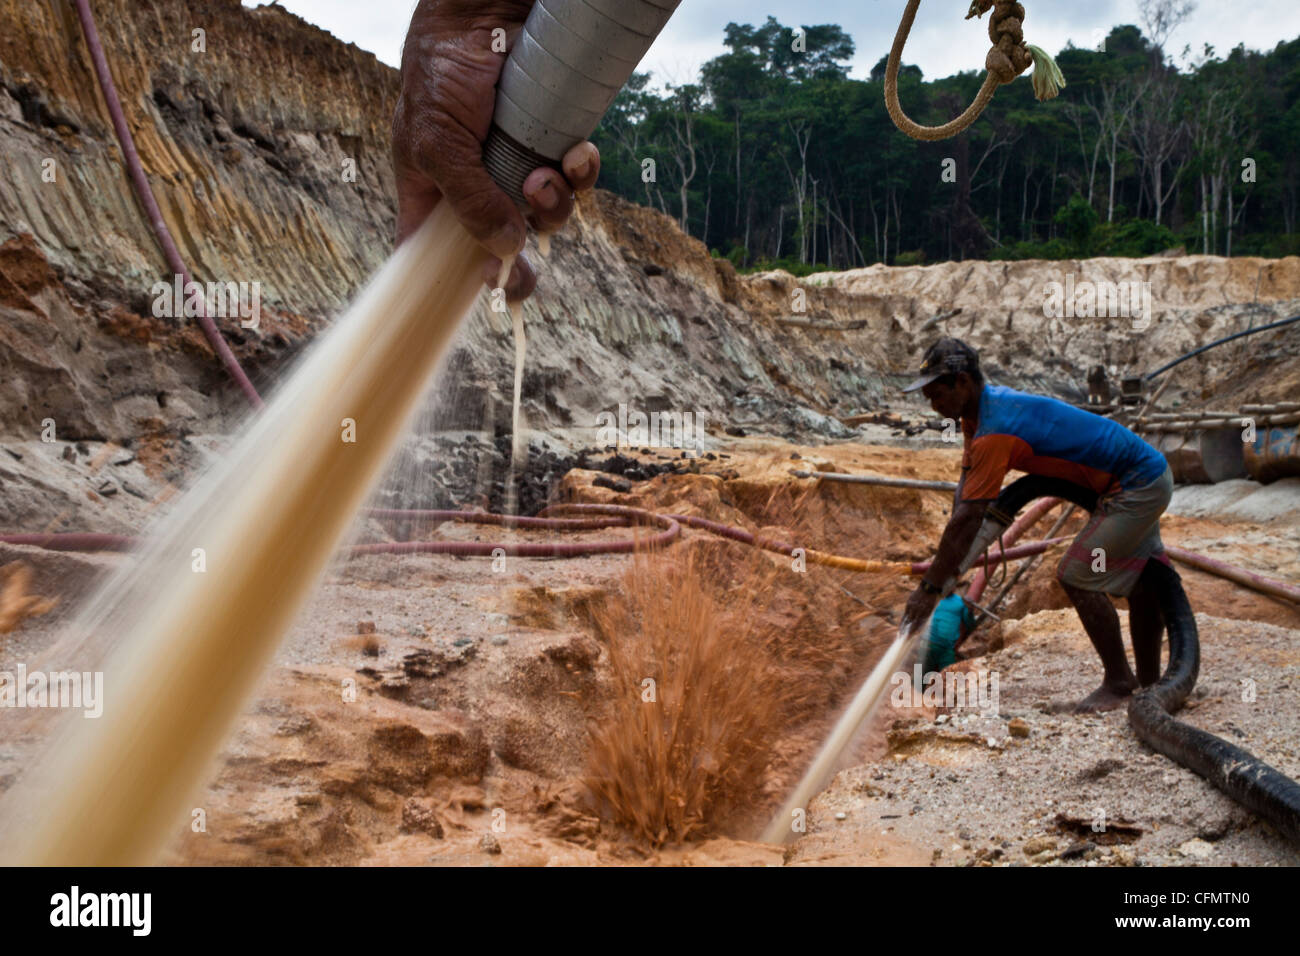 Gold mining Amazon rain forest Hydraulic mining known as chupadeira high-pressure jets of water to dislodge rock - Stock Image